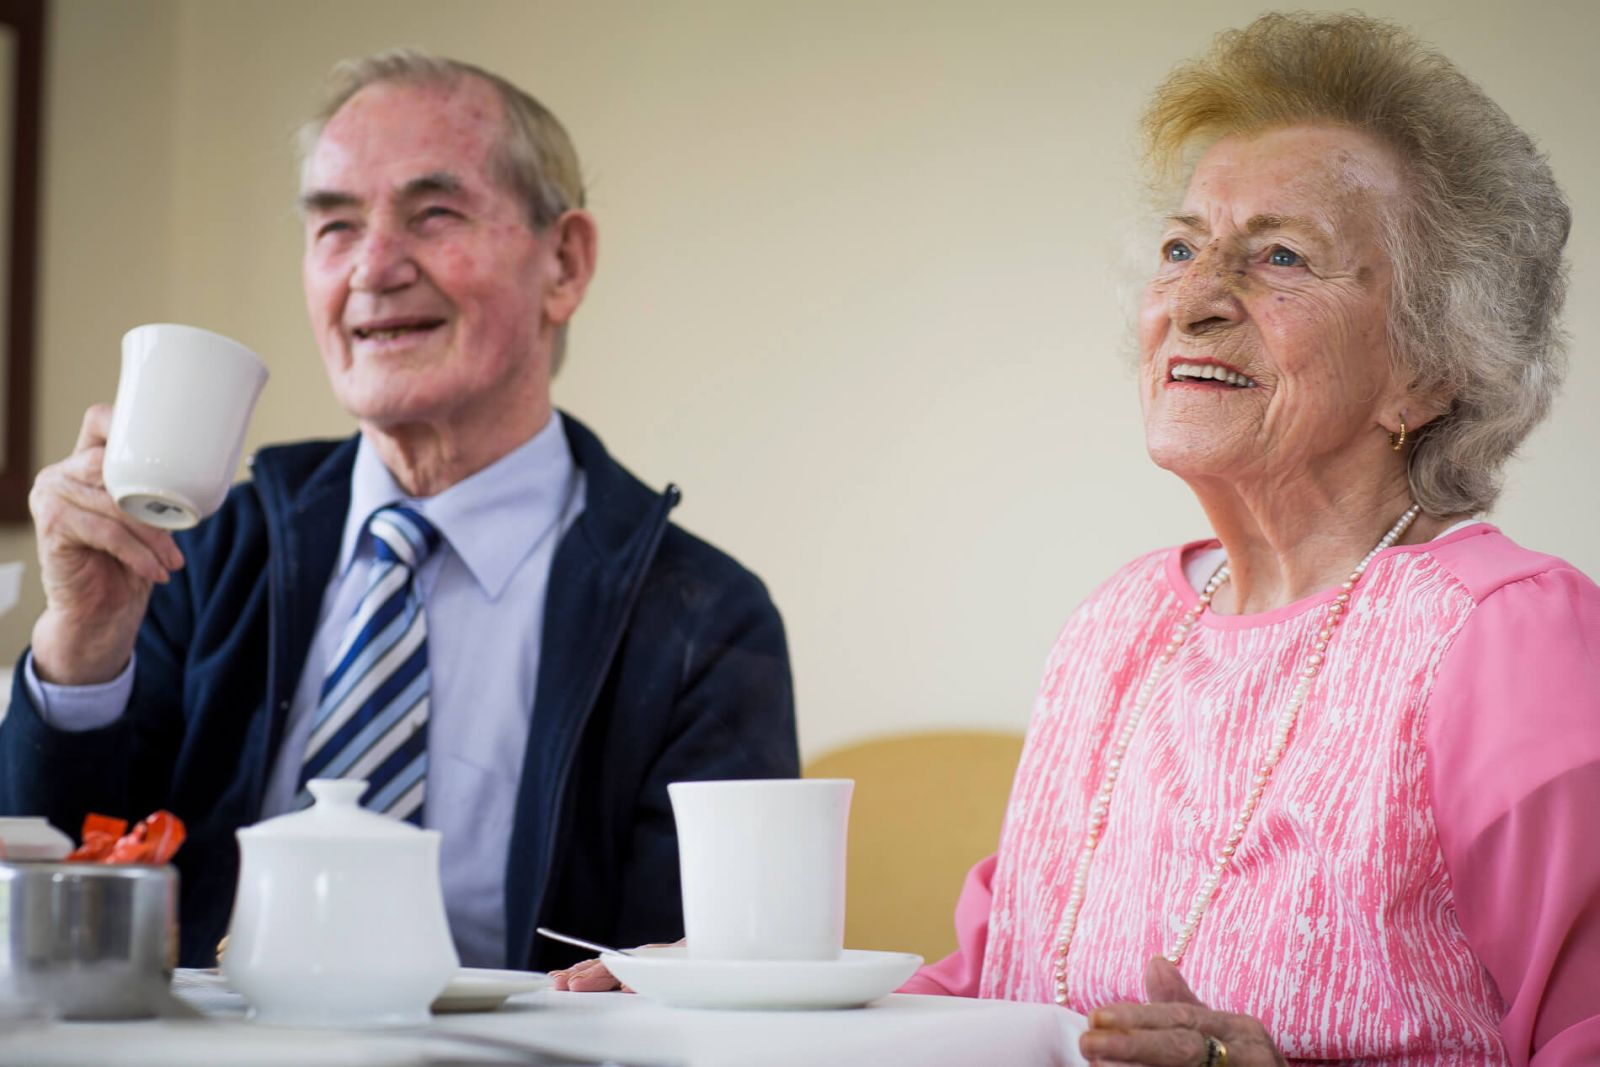 Residents having a laugh over a cup of tea